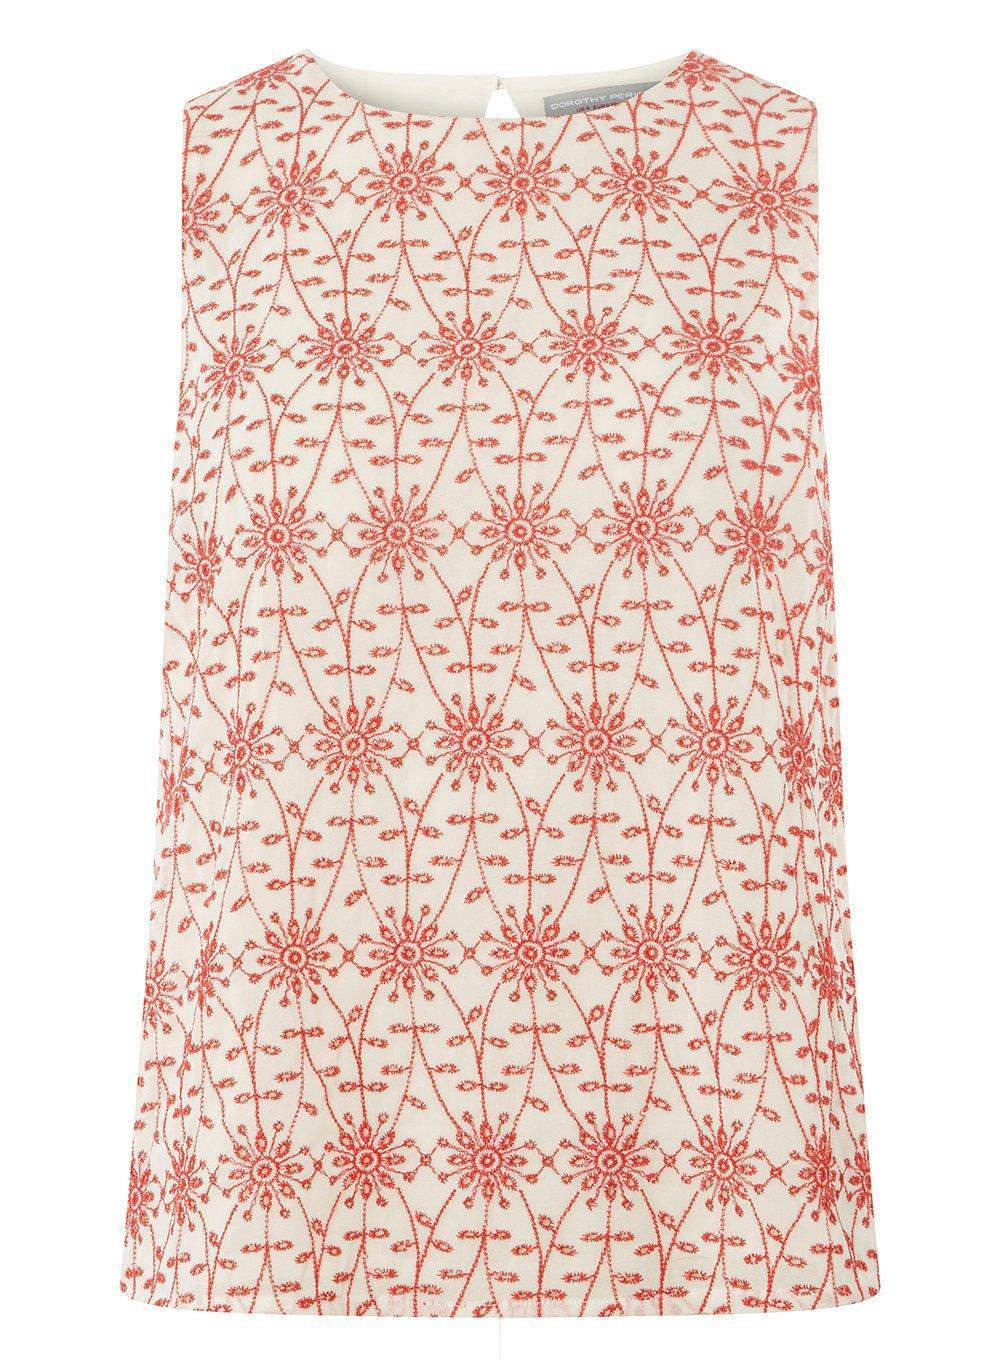 Dorothy Perkins Womens Cutwork Shell Top- Big Discount Cheap Sale For Nice Visit For Sale iiOHww4uFn